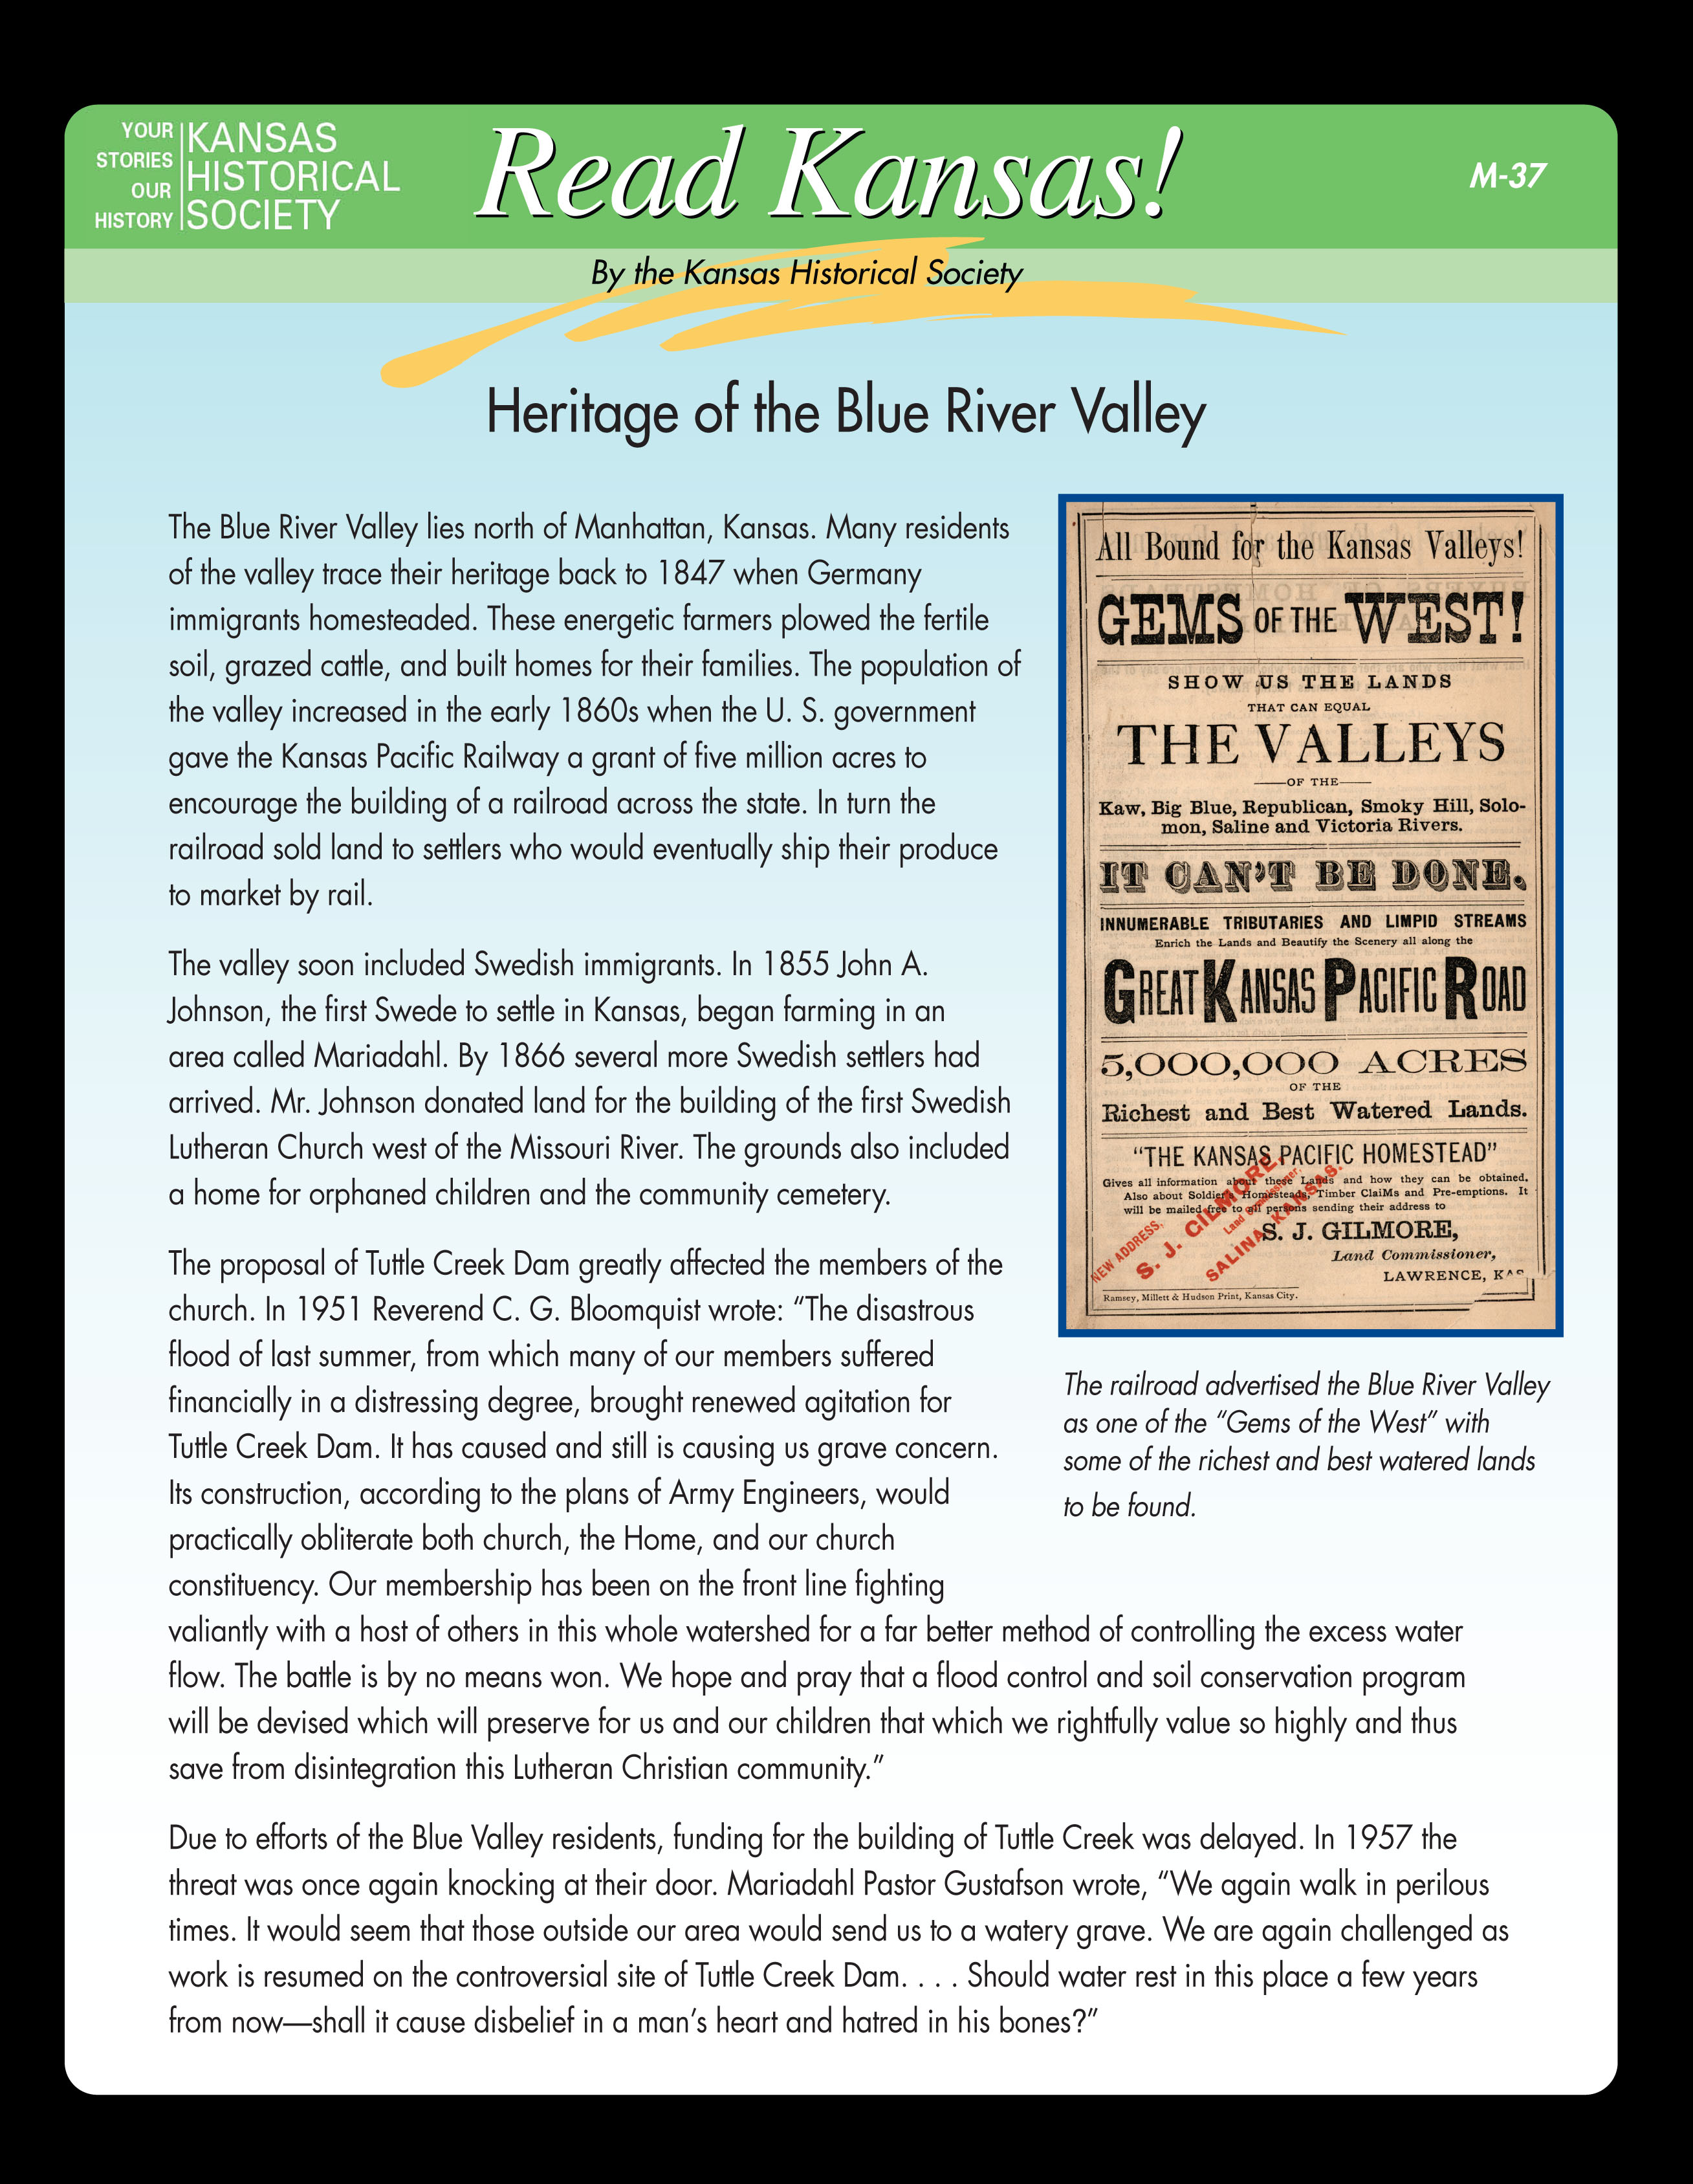 M-37 Heritage of the Blue River Valley